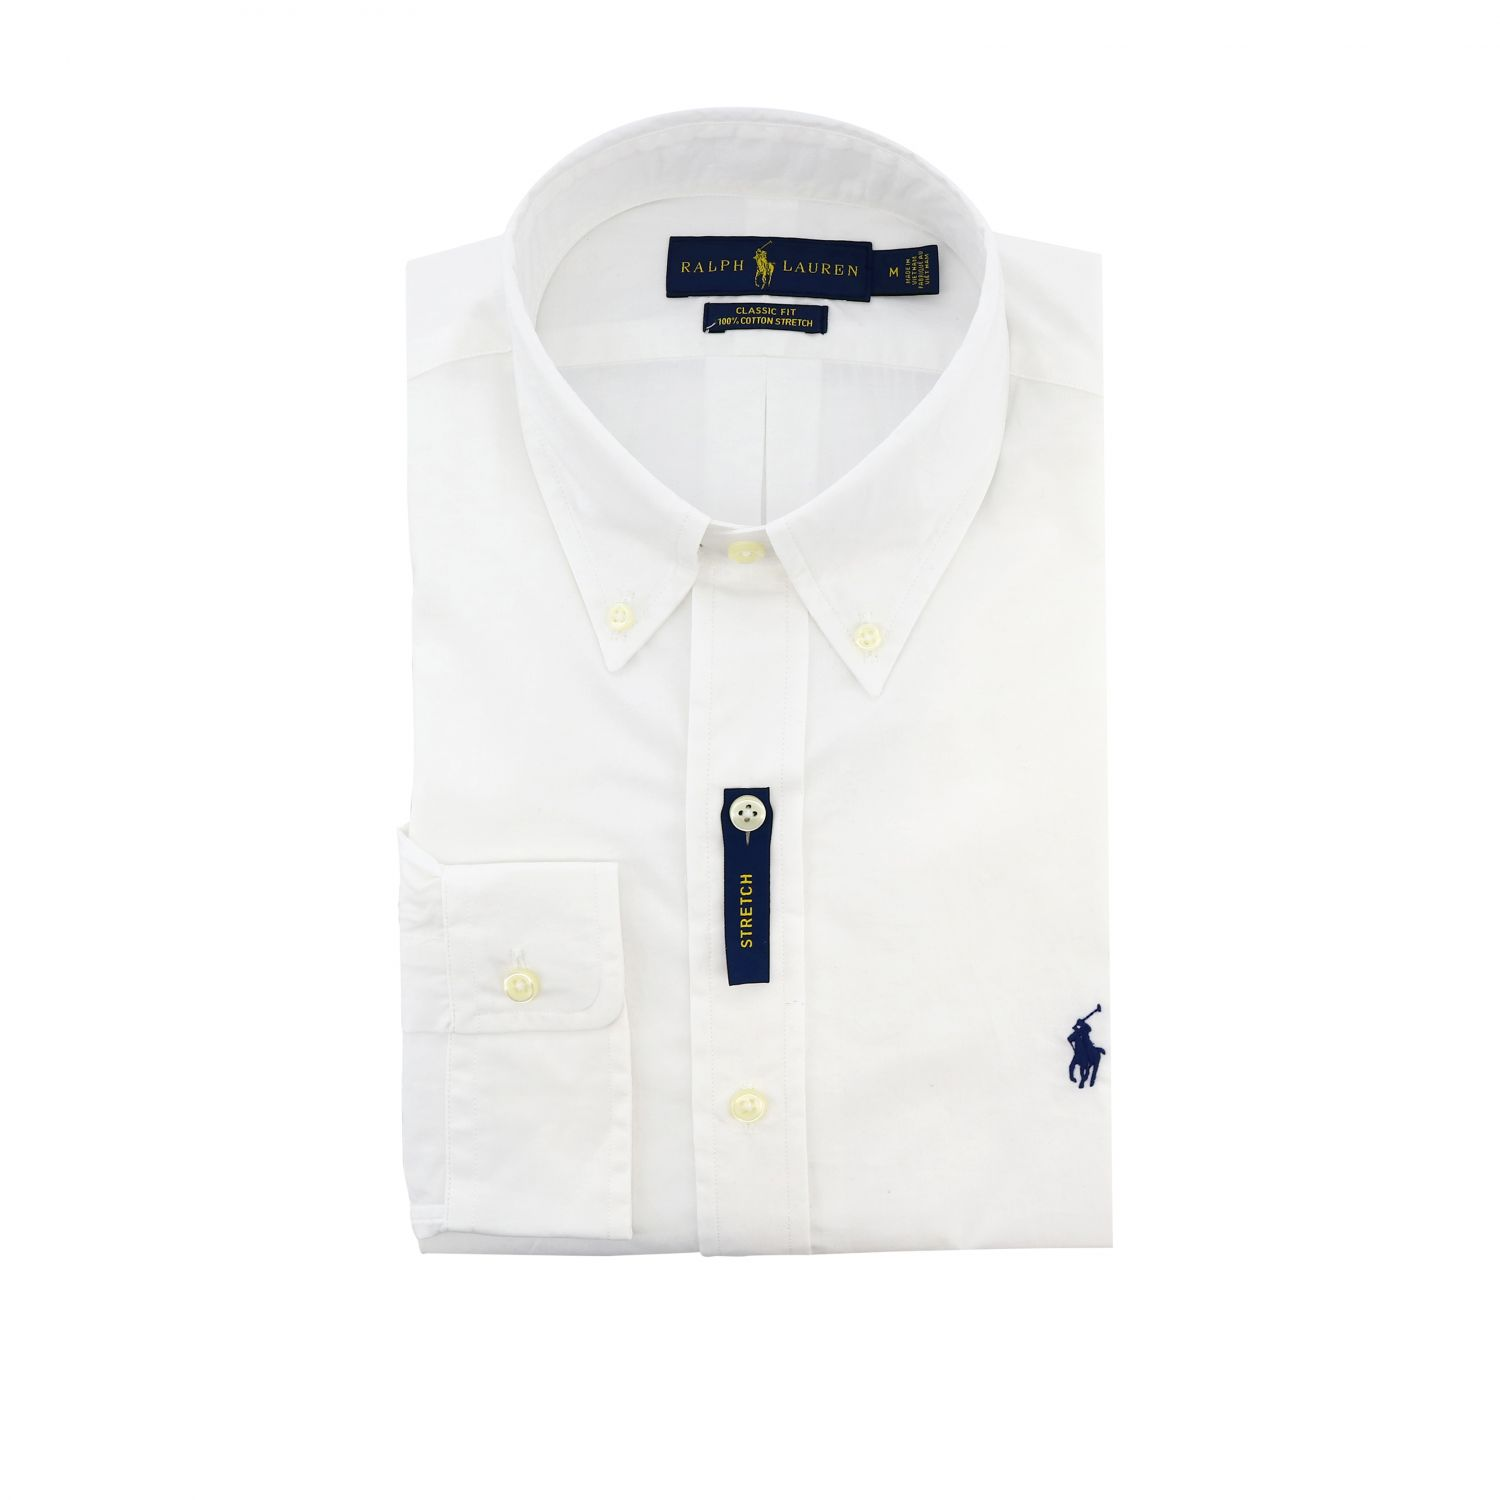 Slim-fit natural stretch shirt with button-down collar and Polo Ralph Lauren logo white 1